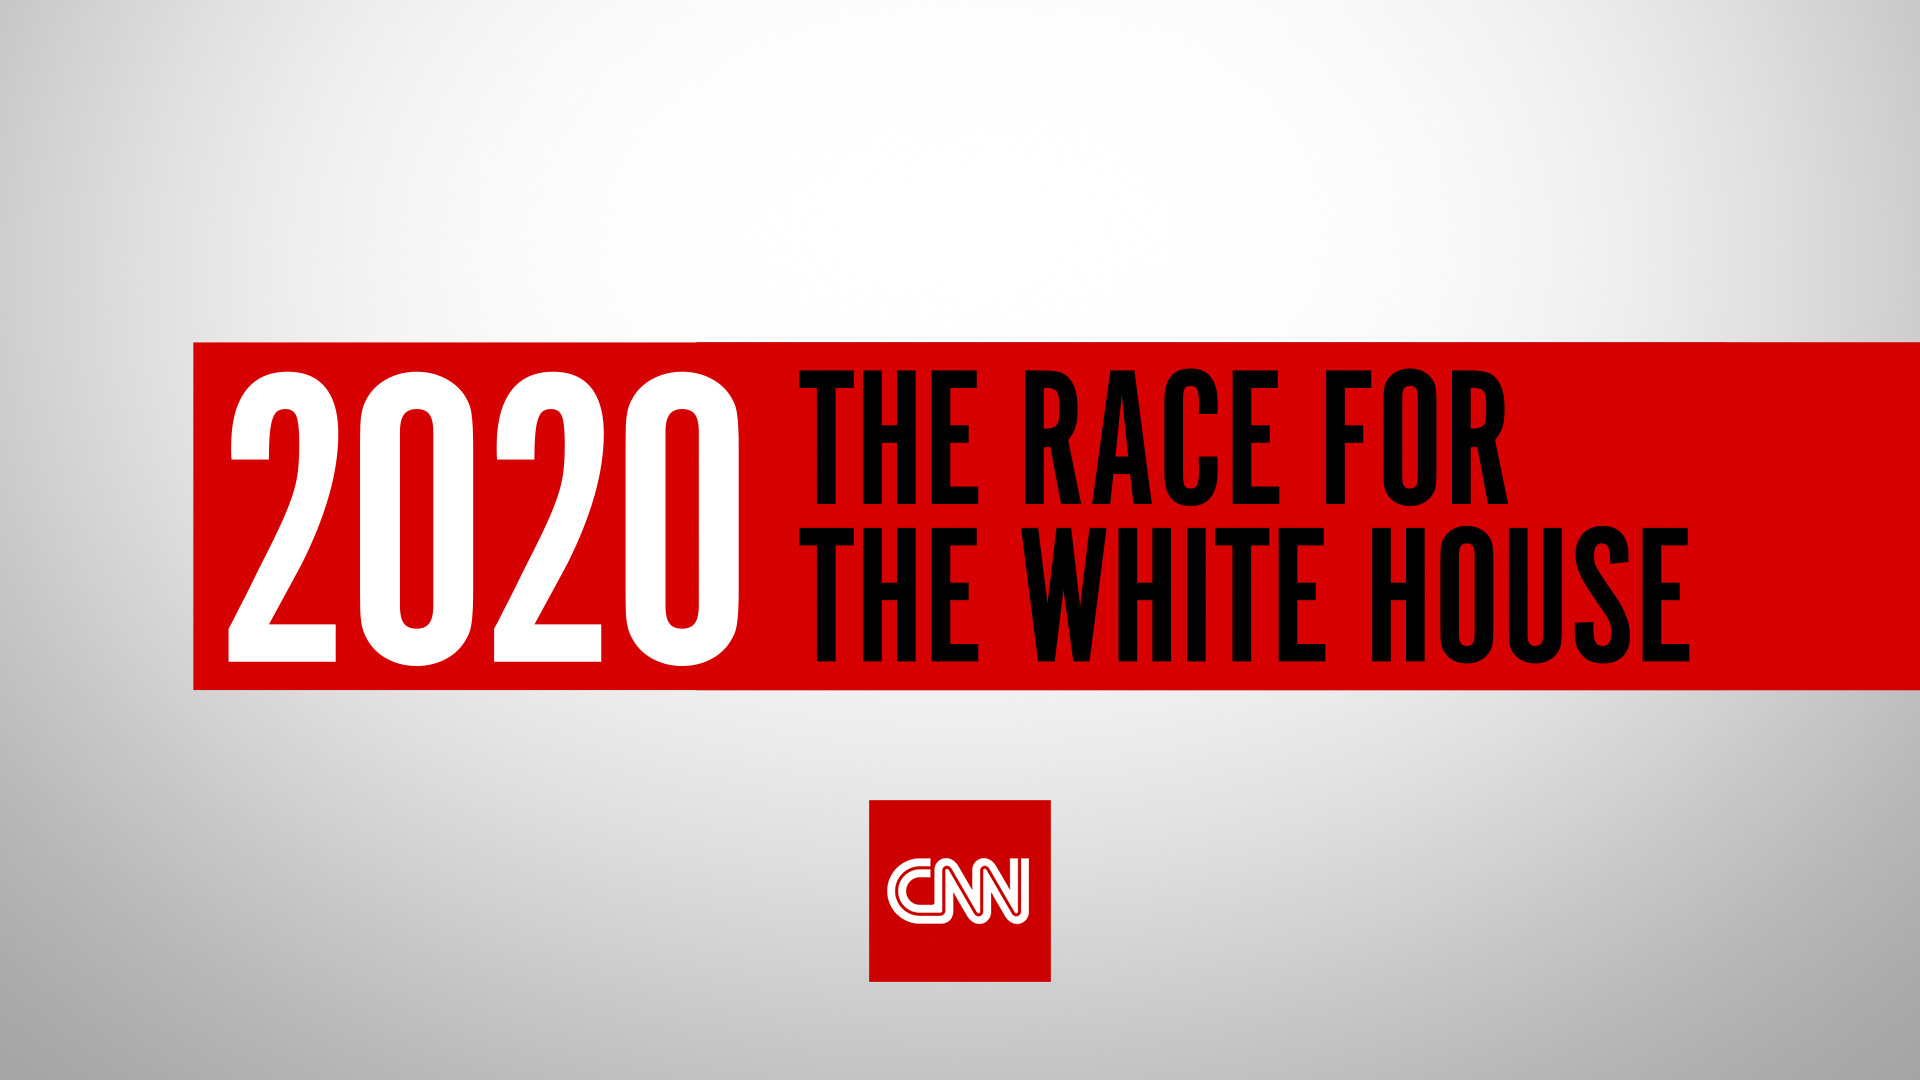 CNN 2020 Election Promotional Package